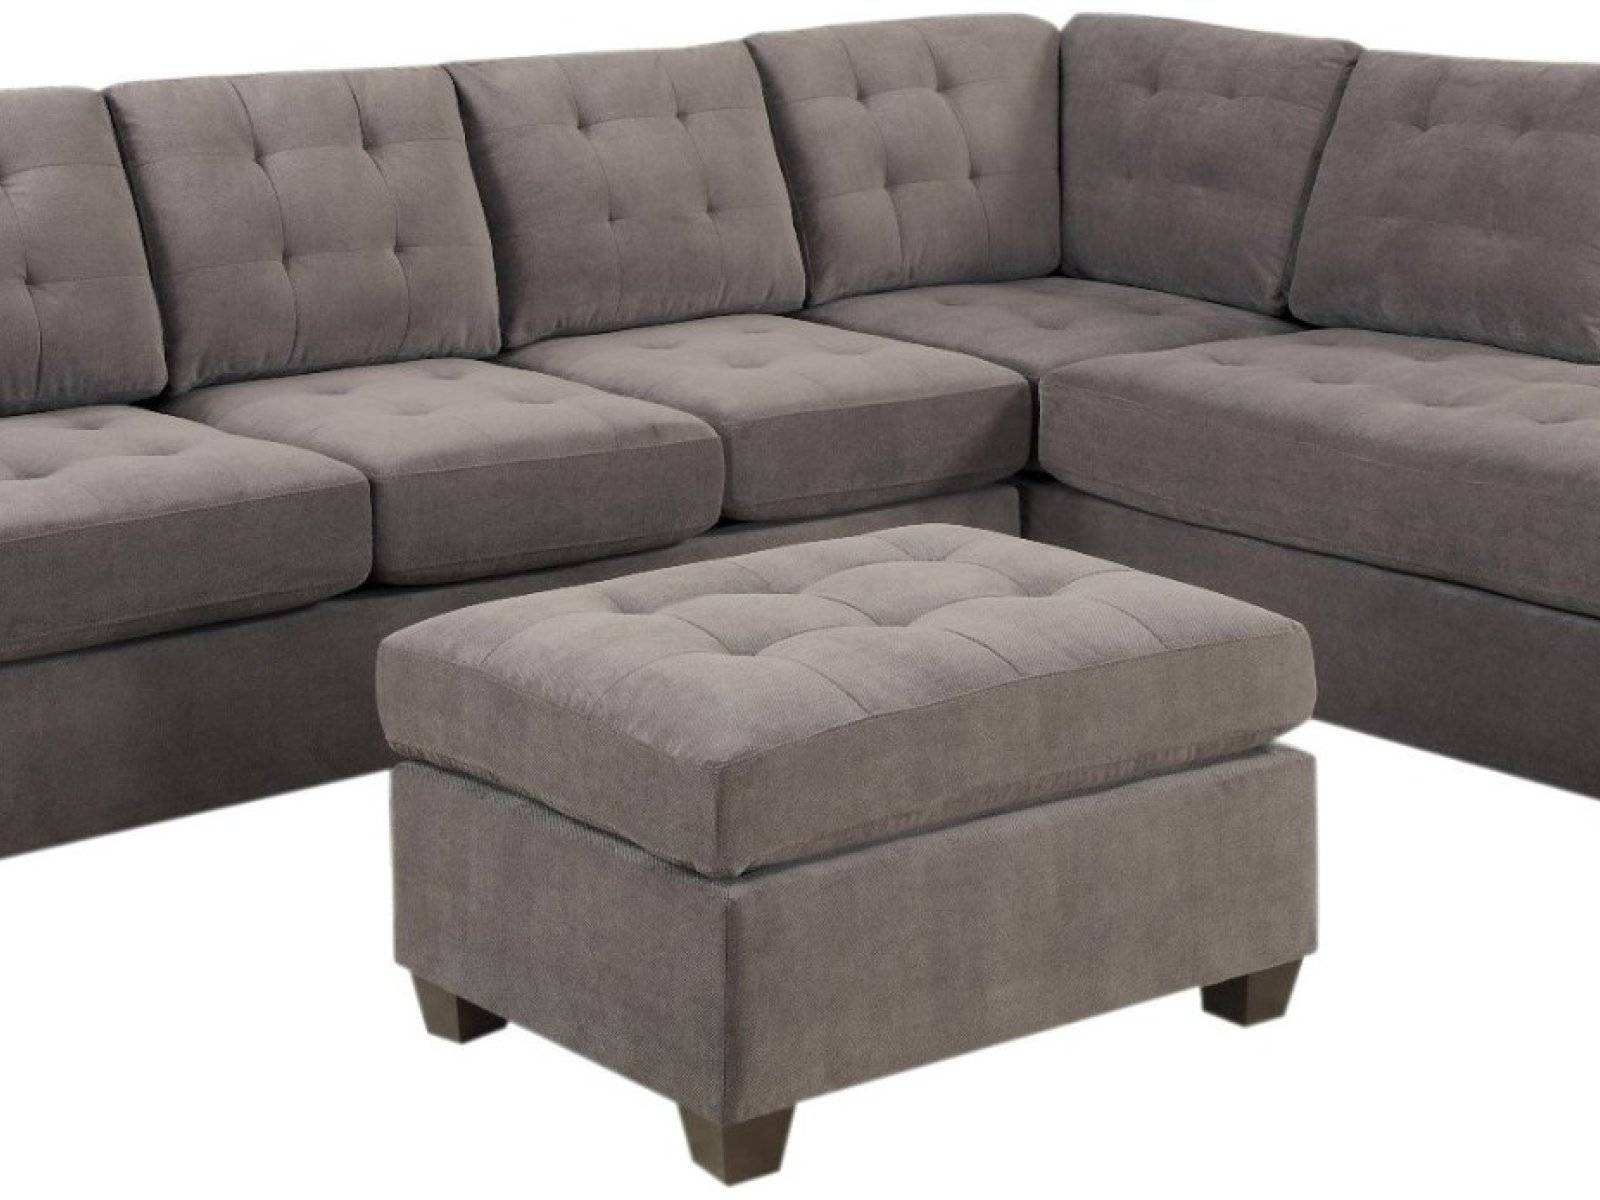 ▻ Sofa : 8 Leather Couch With Chaise Lounge Living Rooms Sofa throughout Sofas With Chaise Longue (Image 30 of 30)